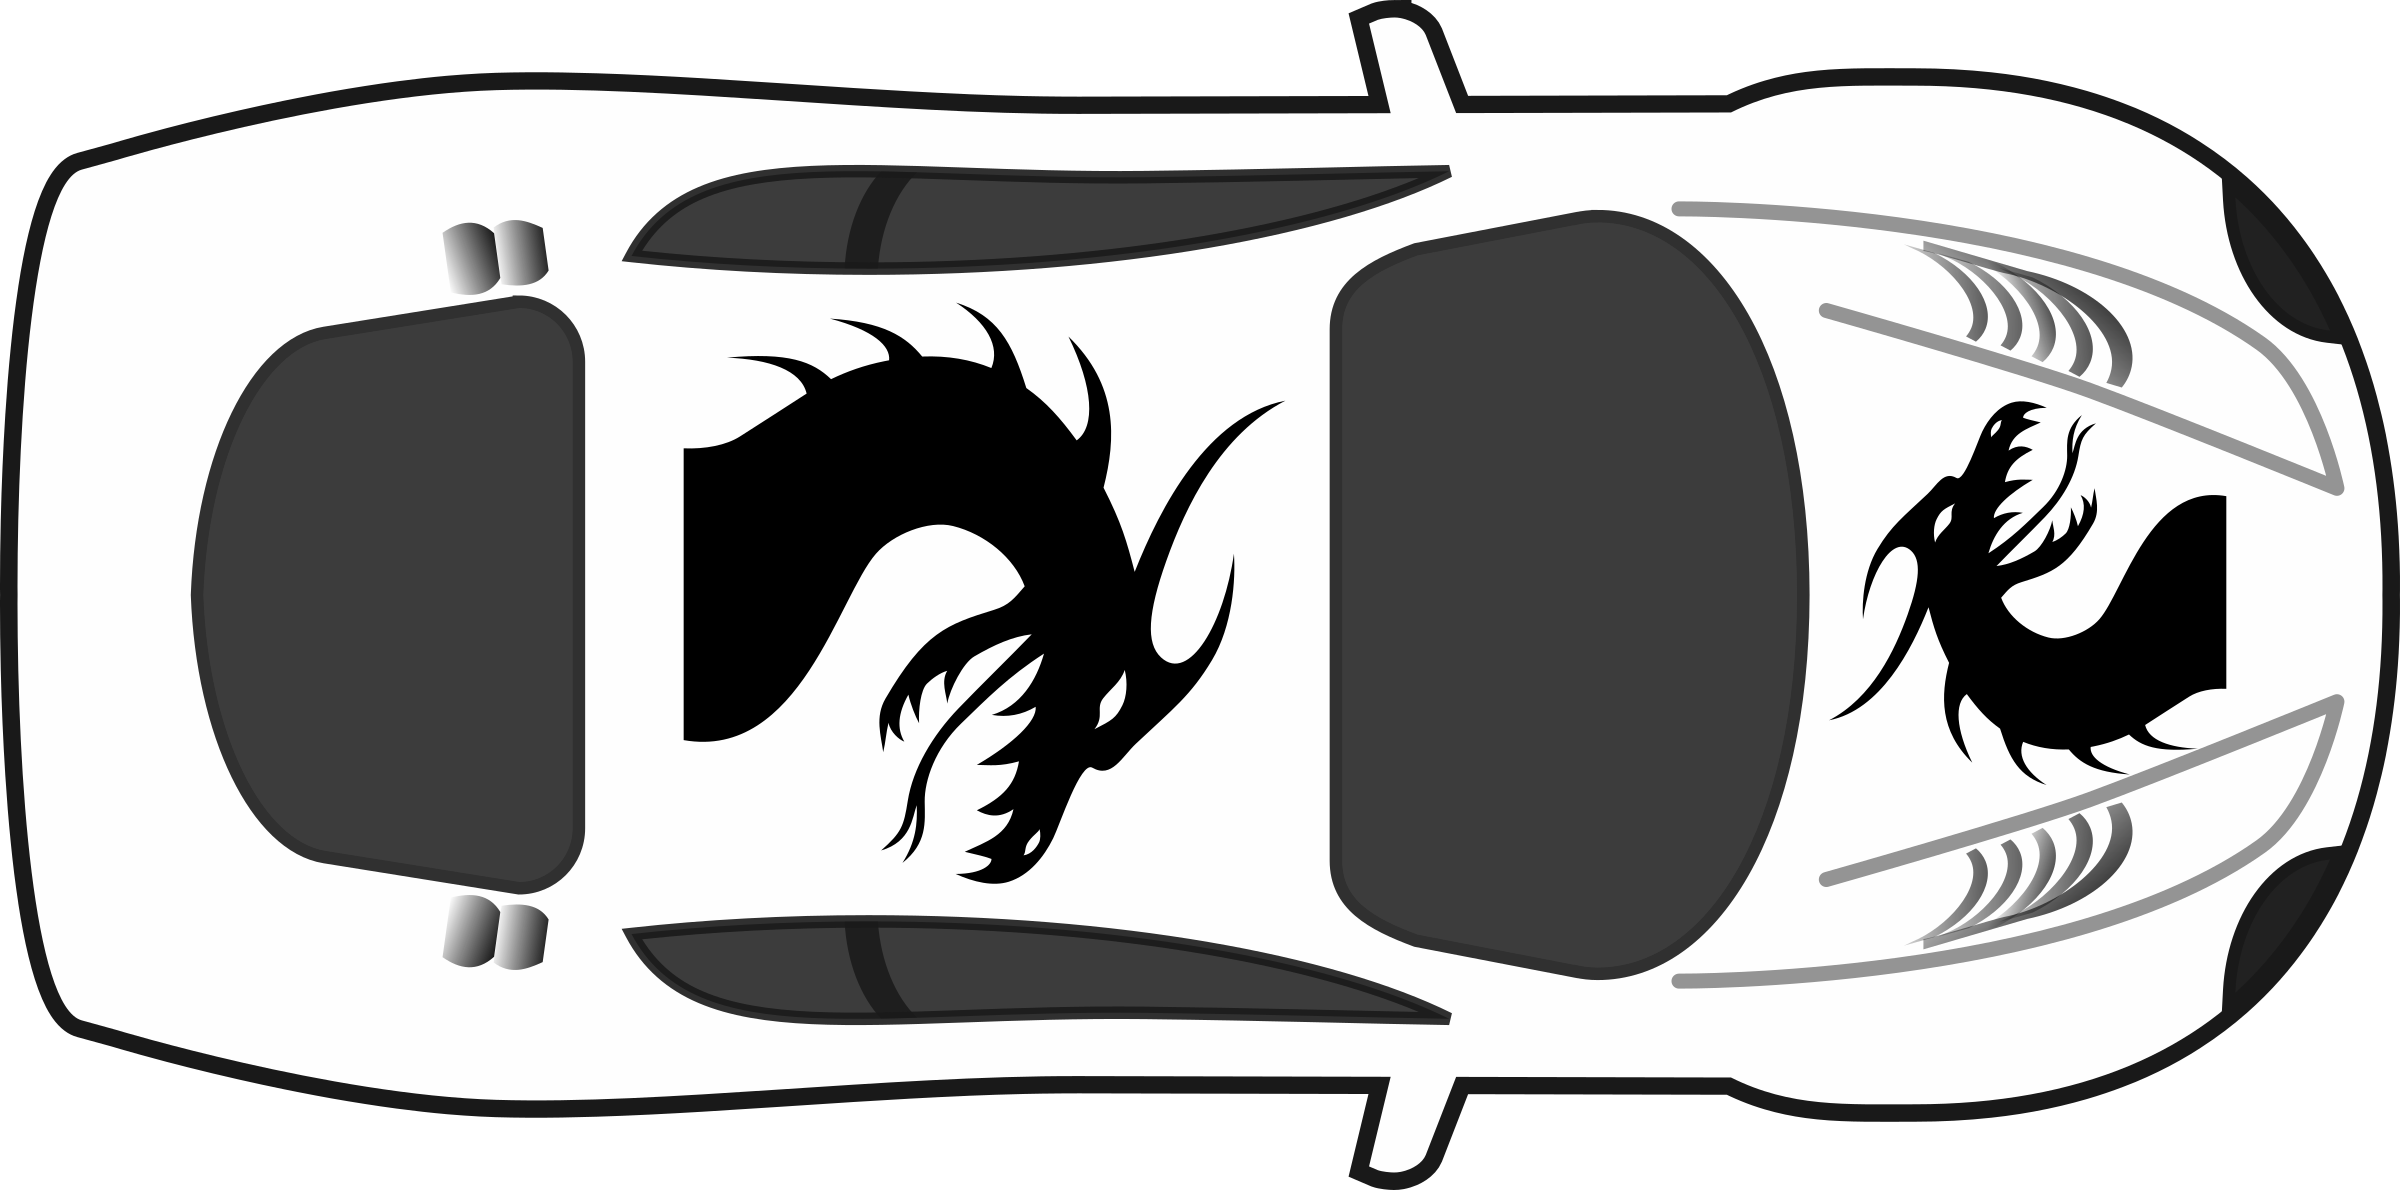 png transparent stock Dragon paint on car. Job clipart black and white